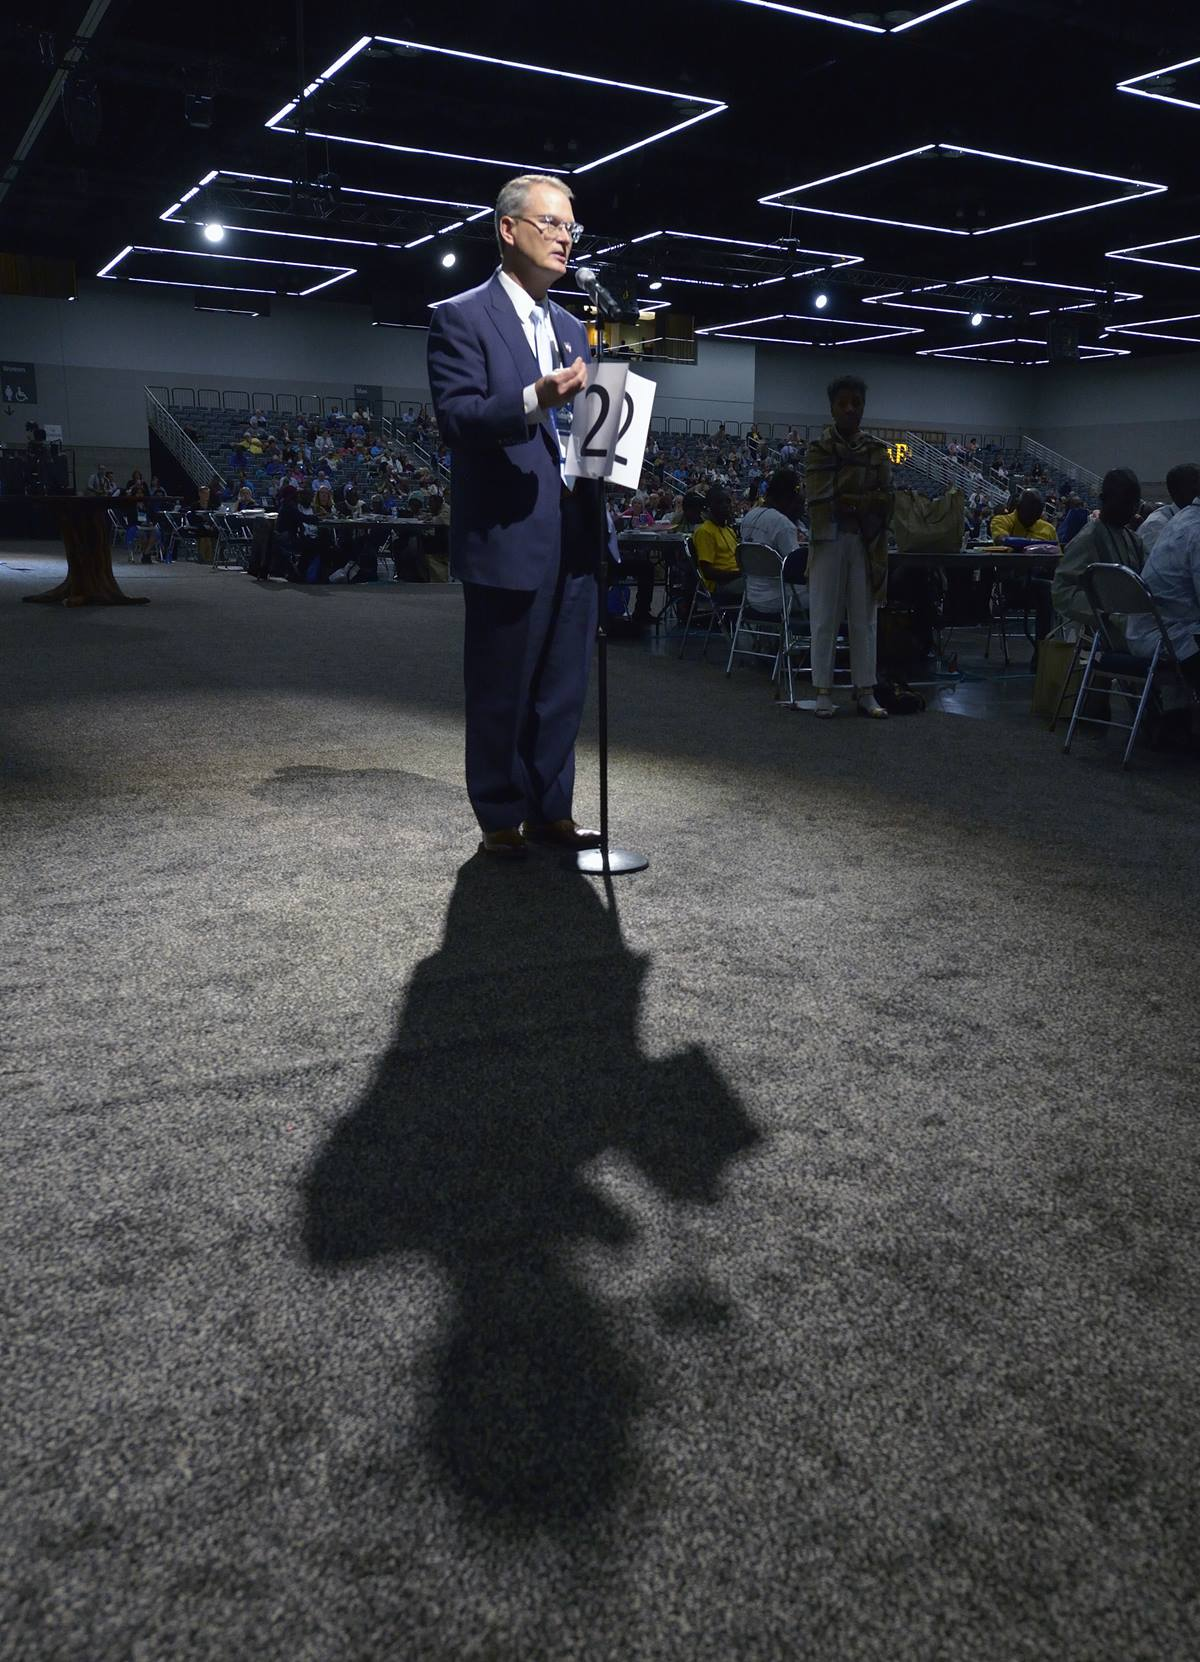 The Rev. Adam Hamilton, a clergy delegate from the Great Plains Conference, speaks on the floor of the 2016 United Methodist General Conference in Portland, Ore. Delegates were discussing what some perceive as a need to divide the denomination over issues of sexuality. Photo by Paul Jeffrey, UMNS